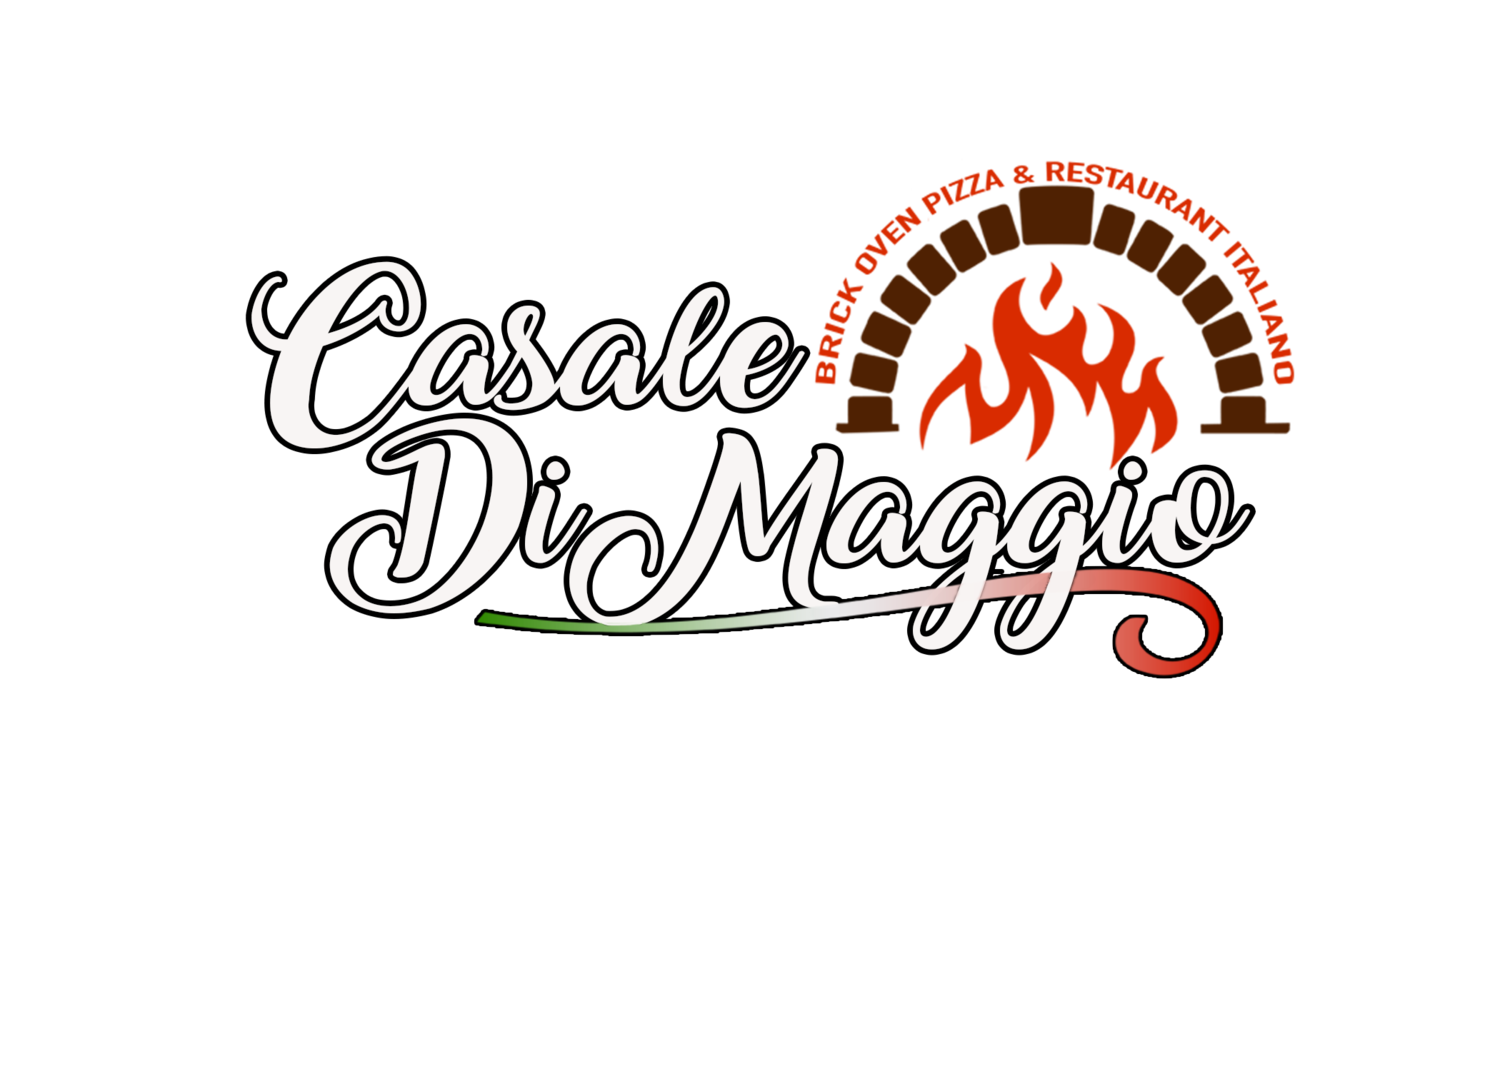 Casale dimaggio brick oven. Restaurants clipart house italian